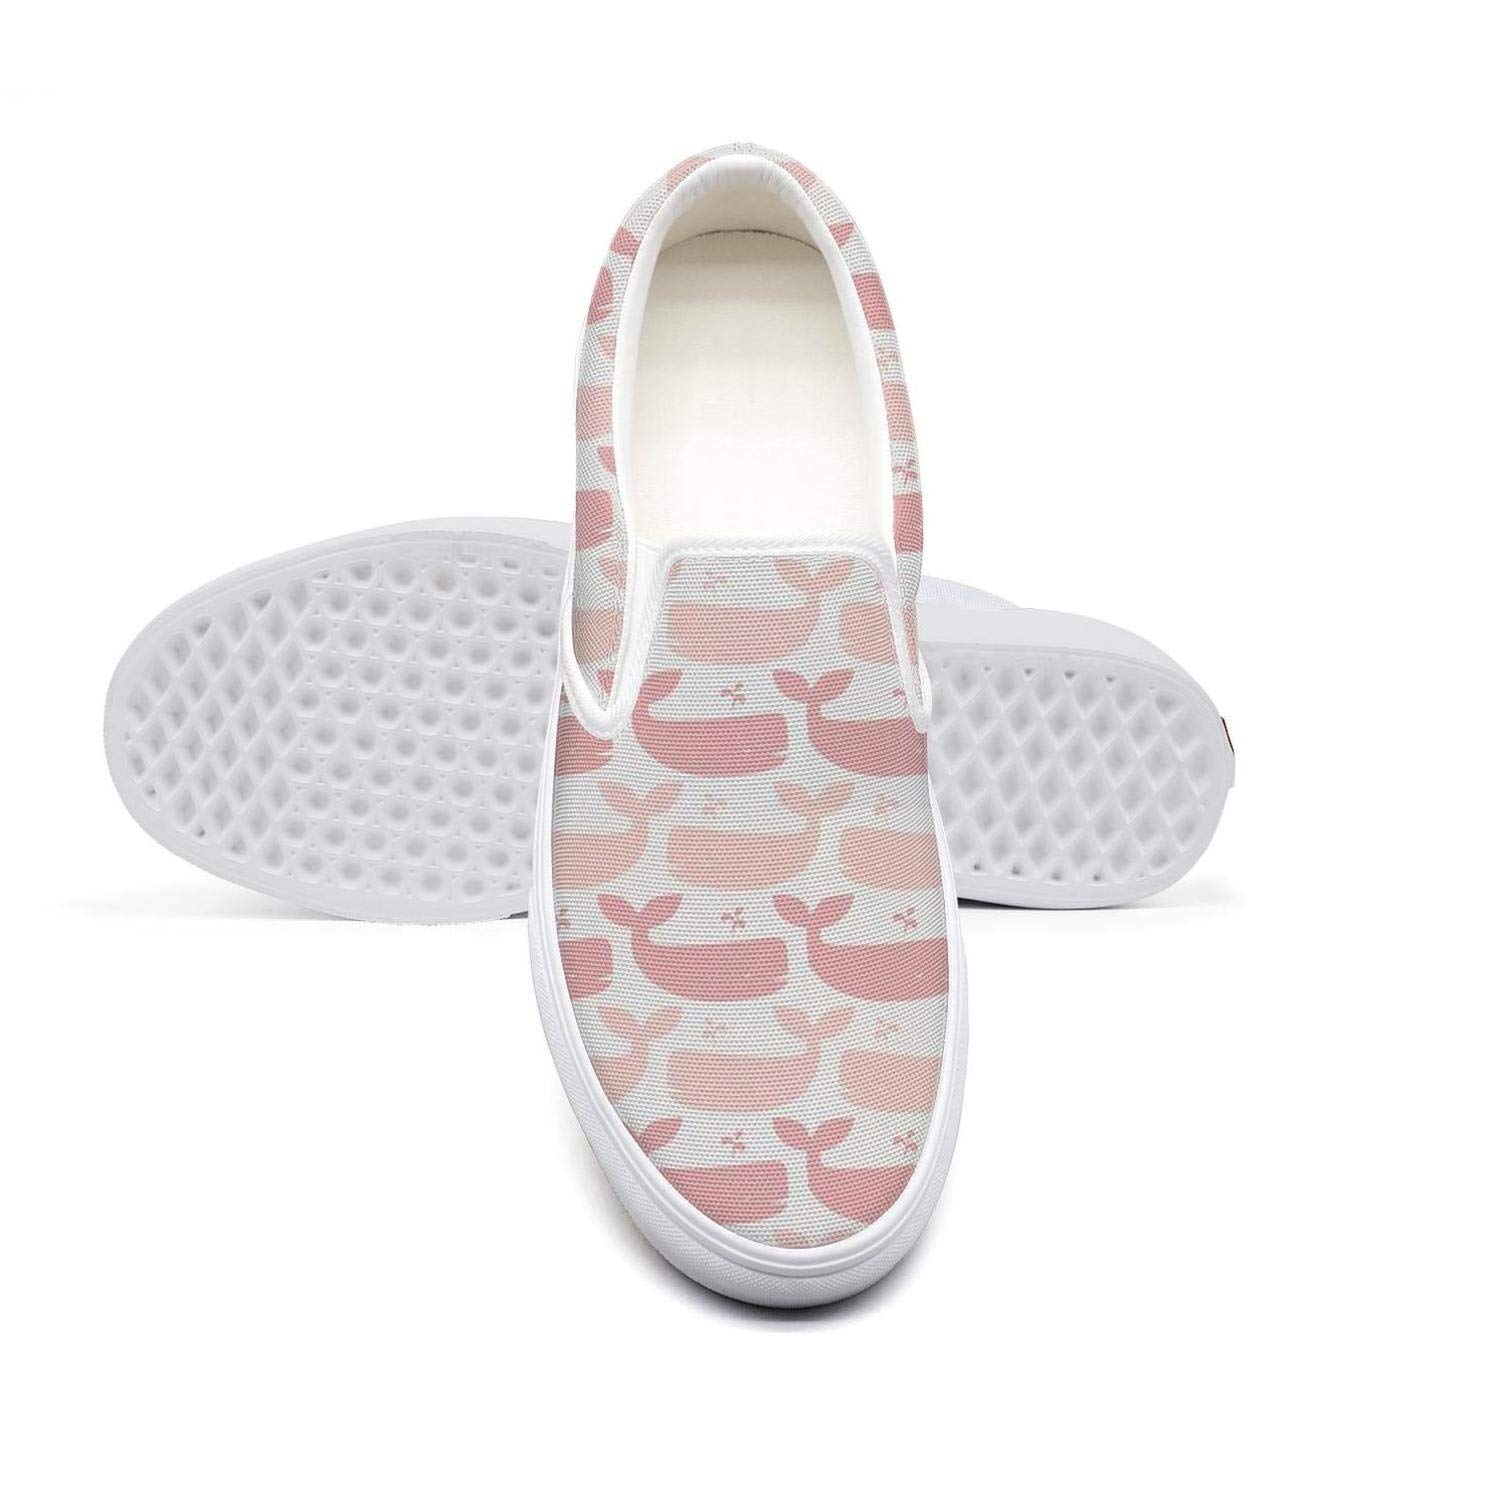 Kawaii Pink Baby Whales College Student Flat Bottom Stylish Sneakers Training Shoes